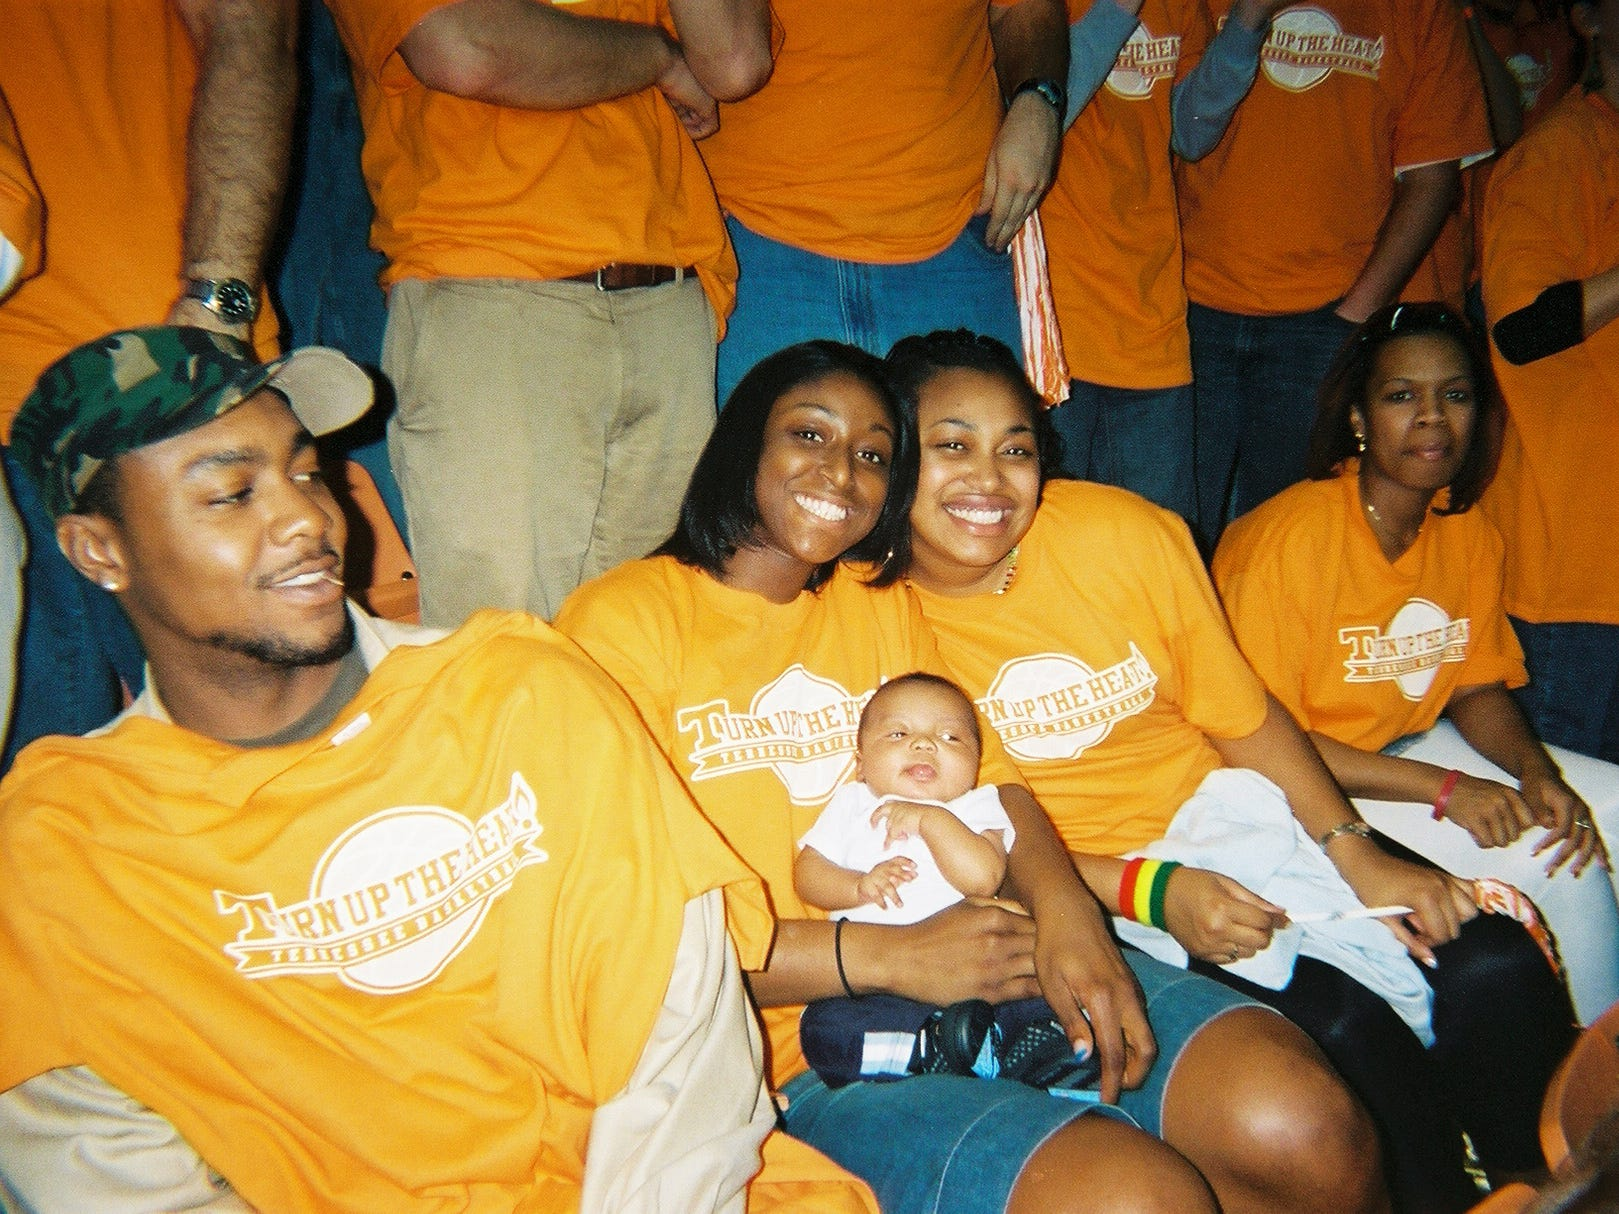 Disposable camera photographs by fans from the Kentucky-Tennessee basketball game on Wednesday, March 1, at Thompson-Boling Arena.